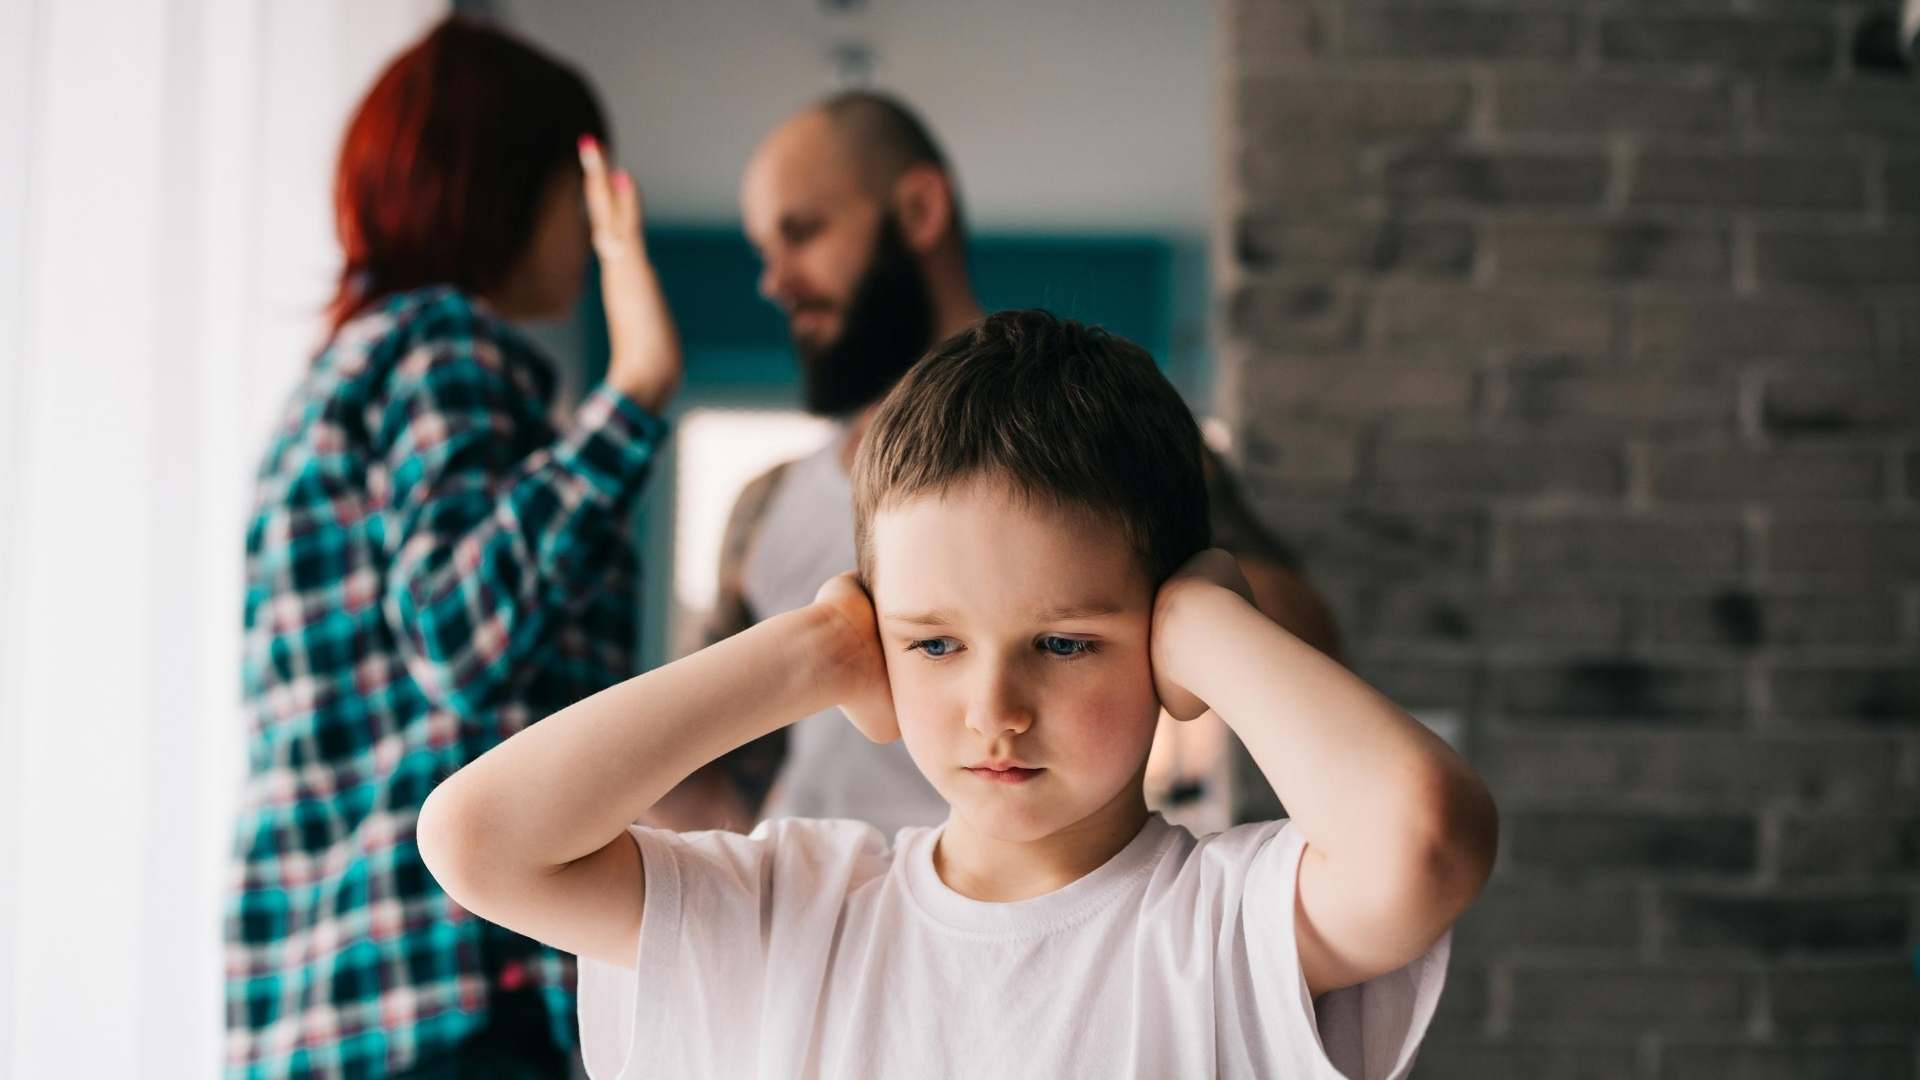 From Parenting Clash To Compromise dadgold parenting tips